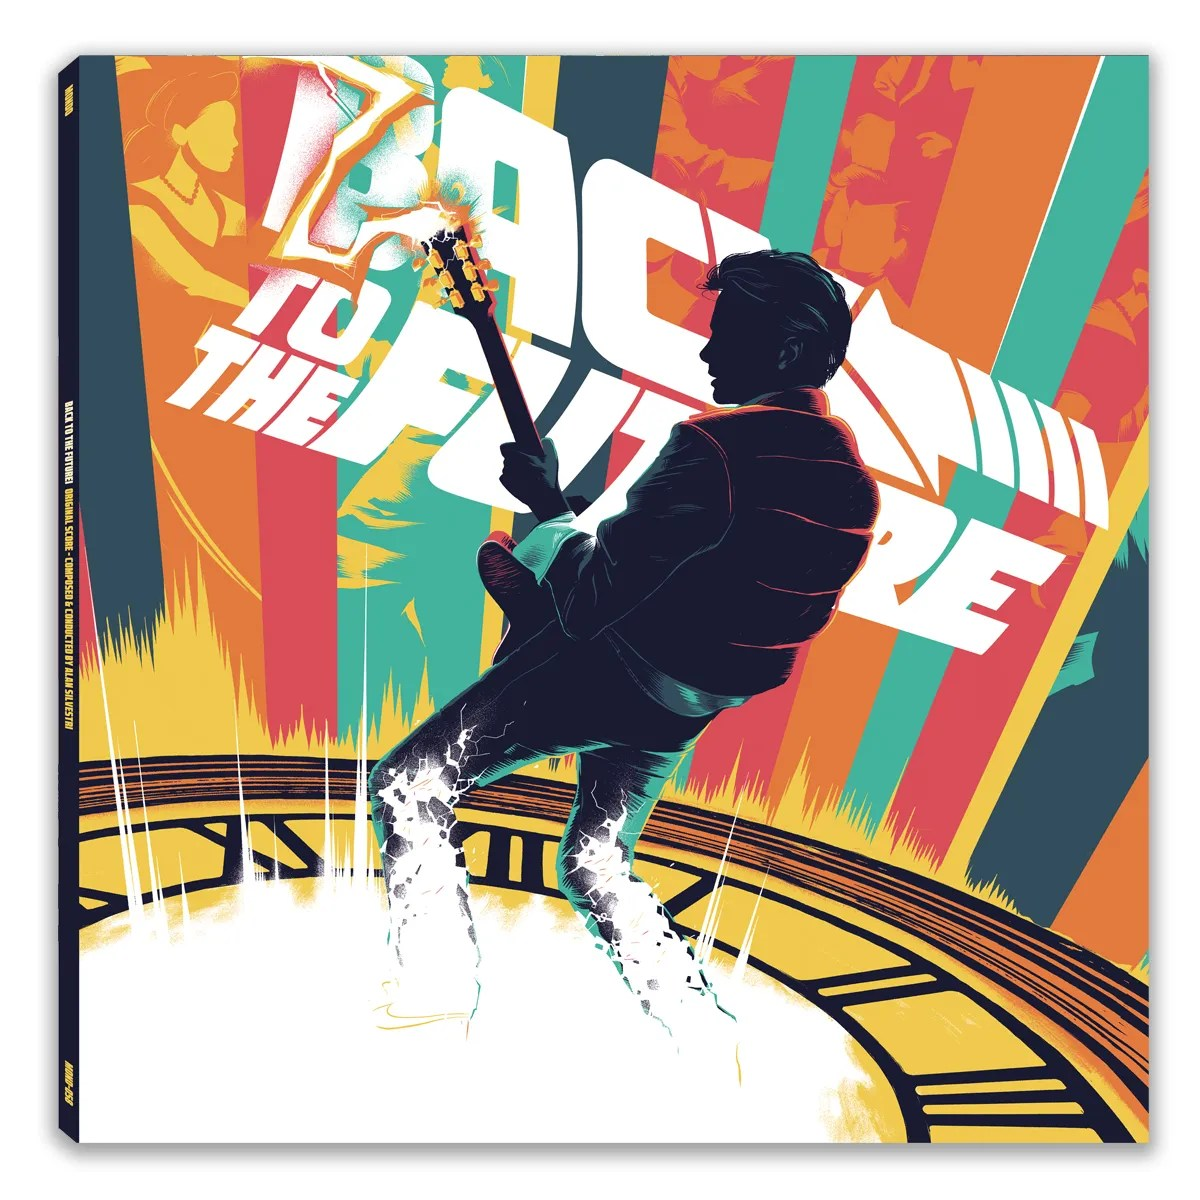 Back To The Future Trilogy Score Heads To Vinyl With Mondo